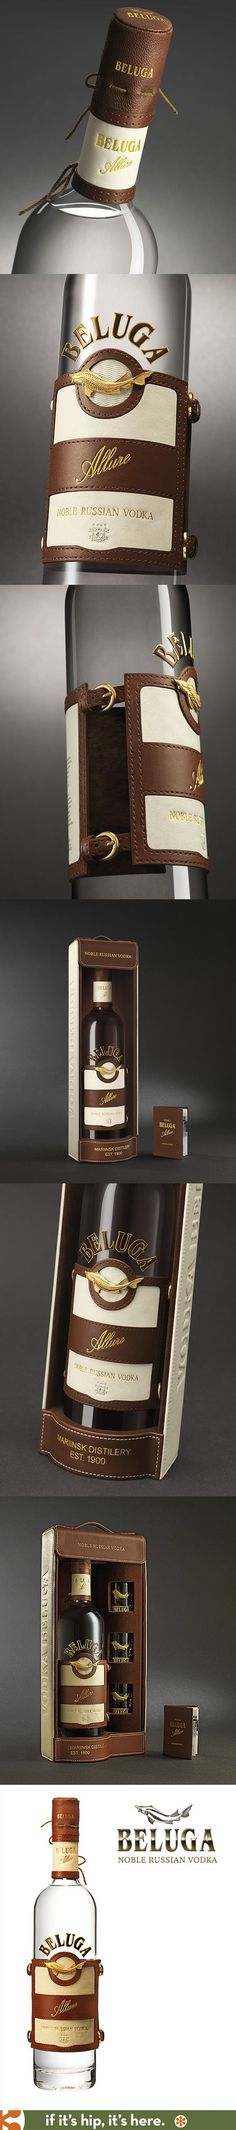 Beluga's Allure Vodka has a leather label and cap with gold buckle accents inspired by the sport of Polo and comes in lovely leather packaged gift sets.